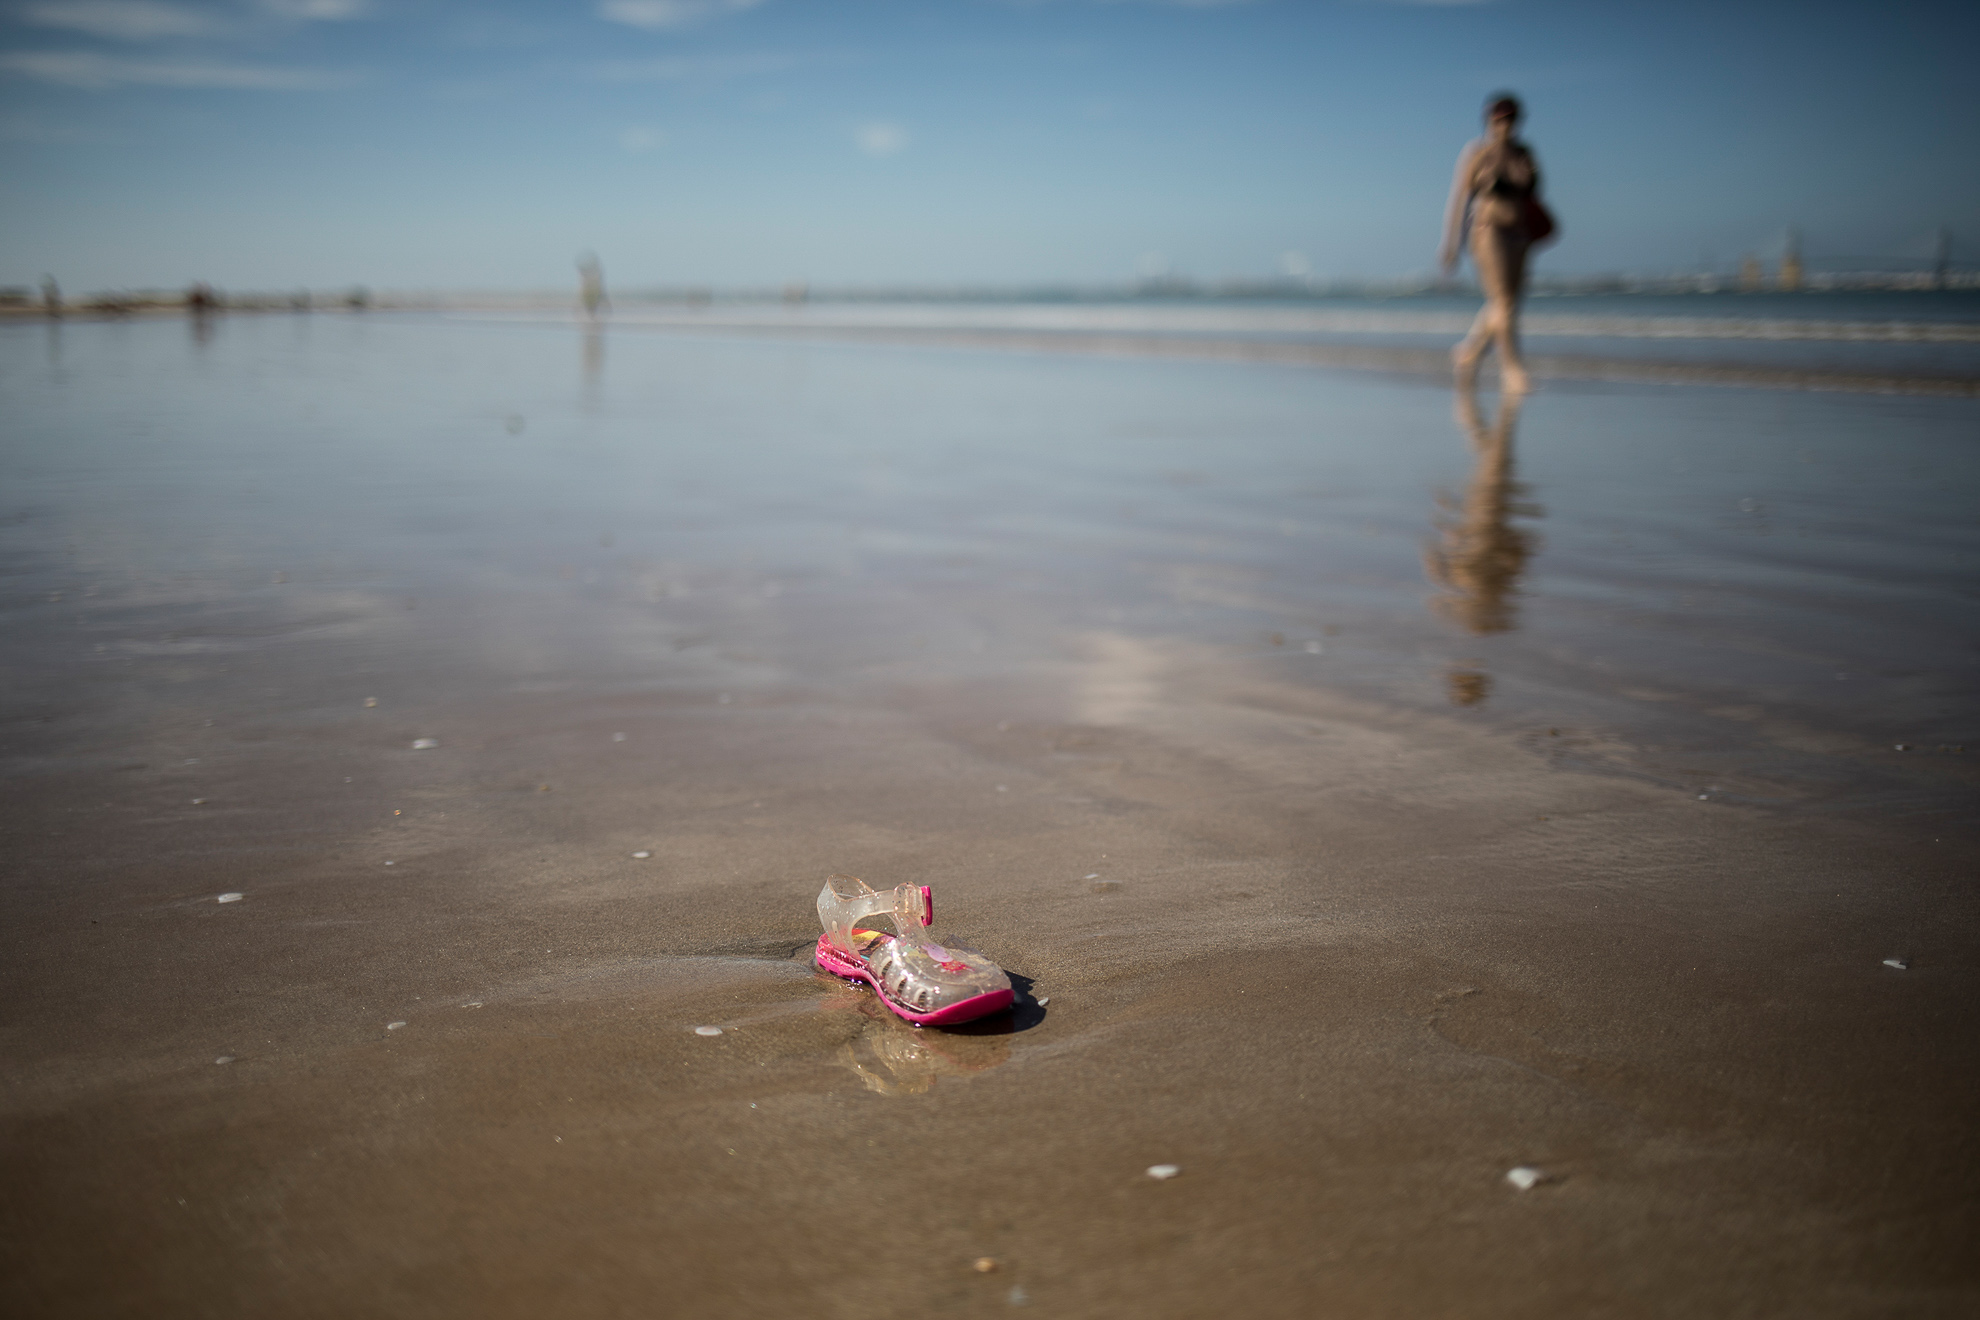 Together with the start of Phase 2 of the pandemic de-escalation plan and the opening of beaches to bathing, the waste left by people returns to the sea. In the image, a plastic shoe returned by the sea at a beach in Cádiz.